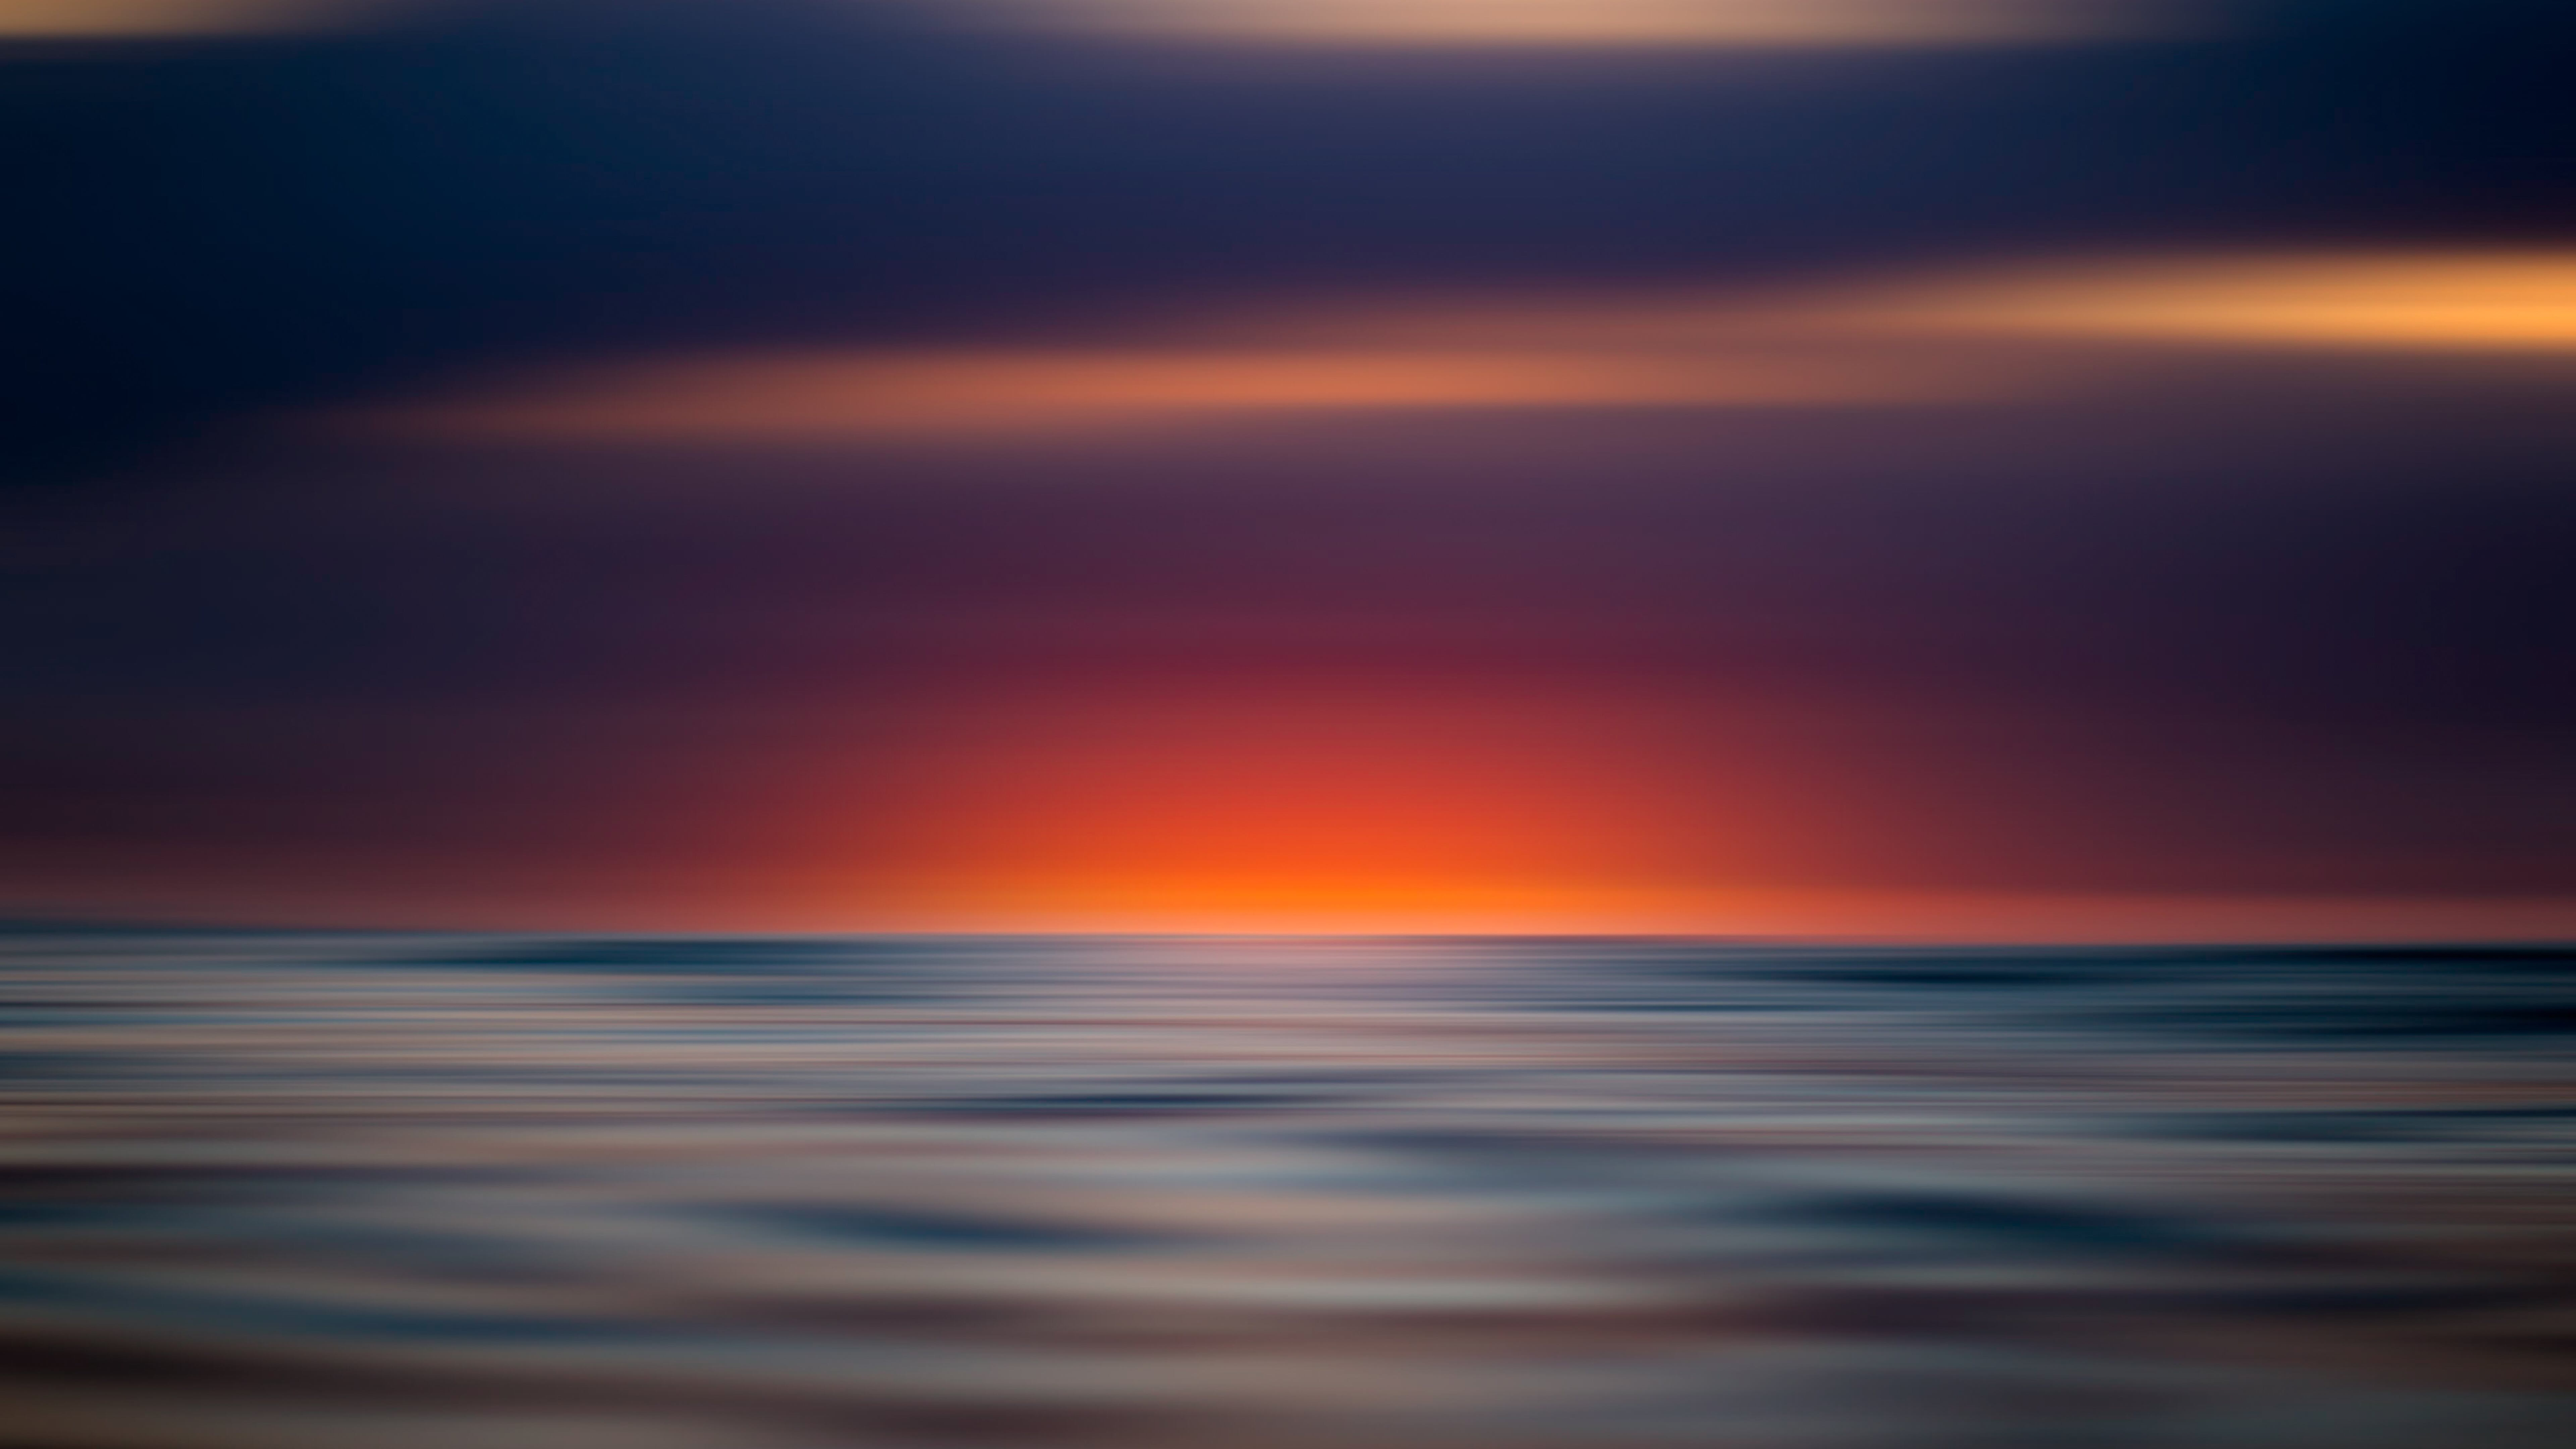 7680x4320 sunset view blur 8k 8k hd 4k wallpapers images backgrounds photos and pictures - Background images 4k hd ...